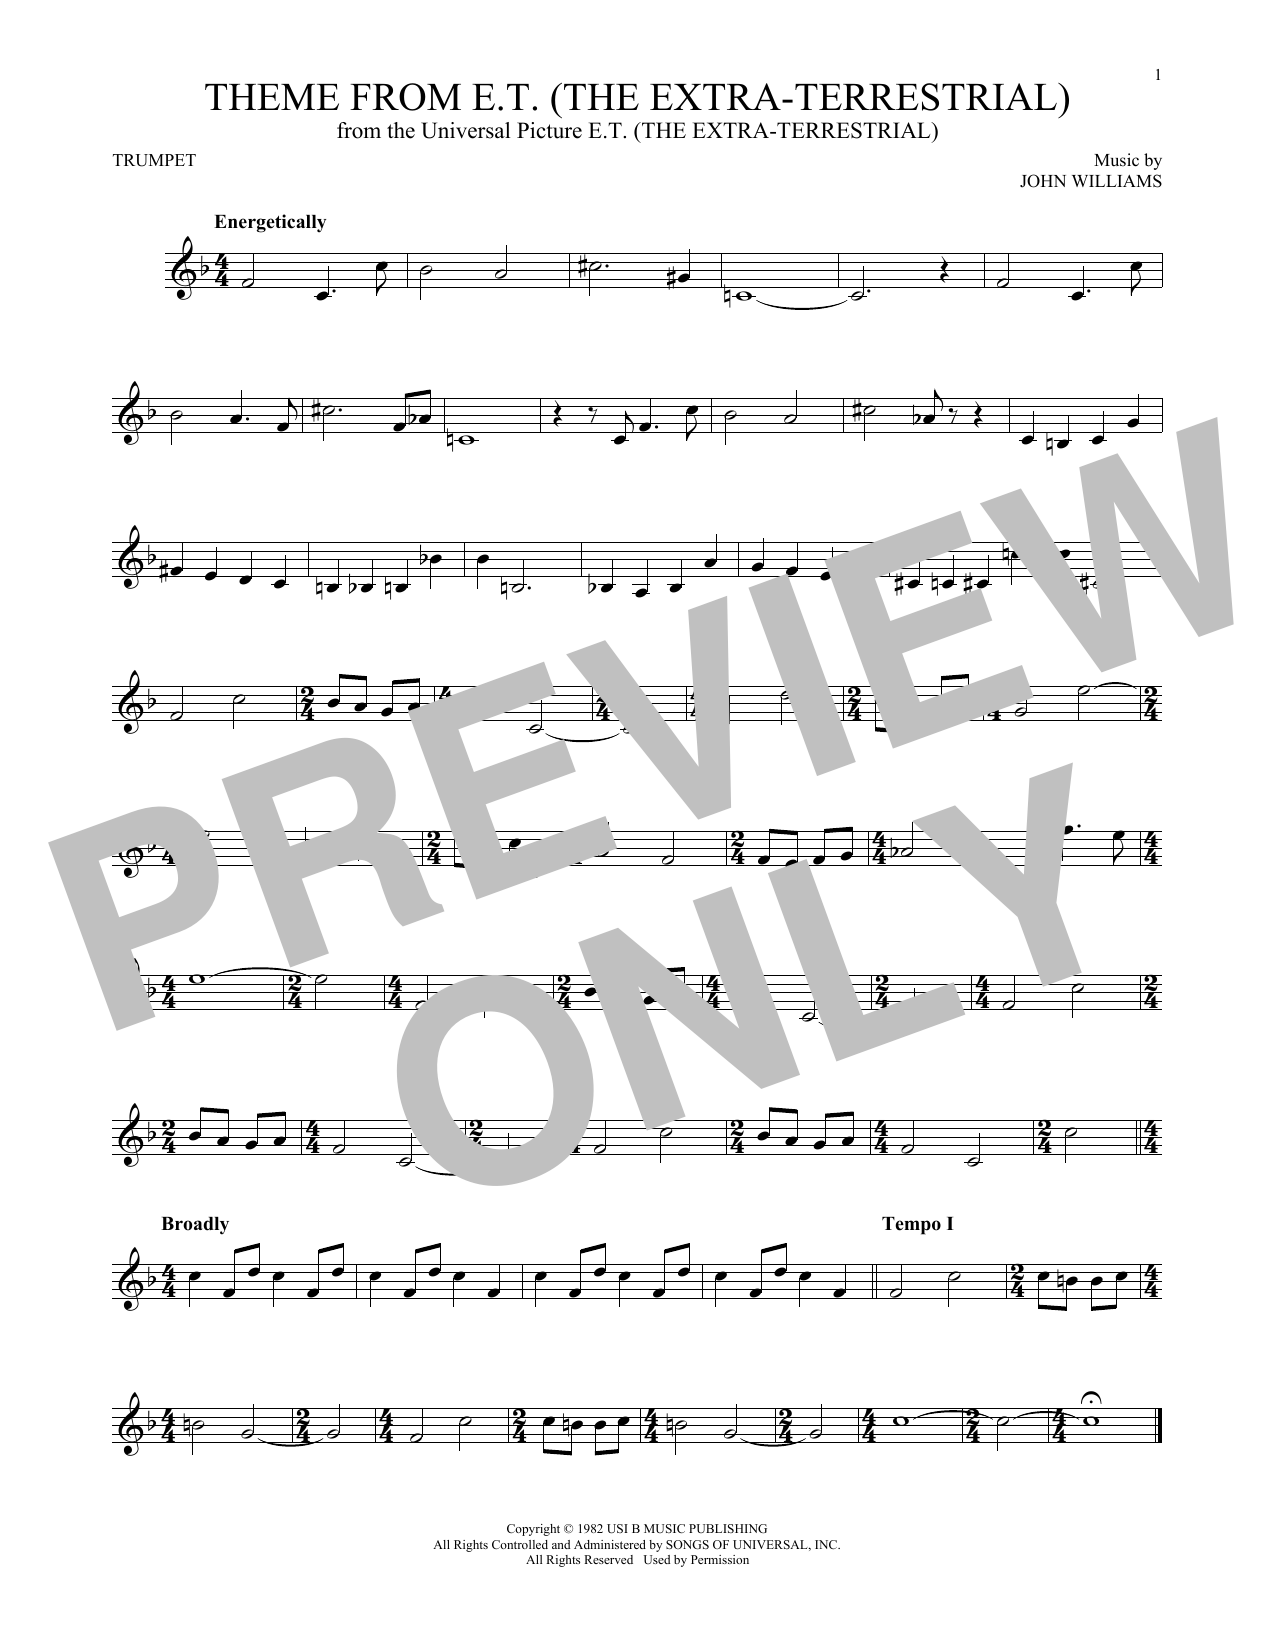 Theme From E.T. (The Extra-Terrestrial) (Trumpet Solo)